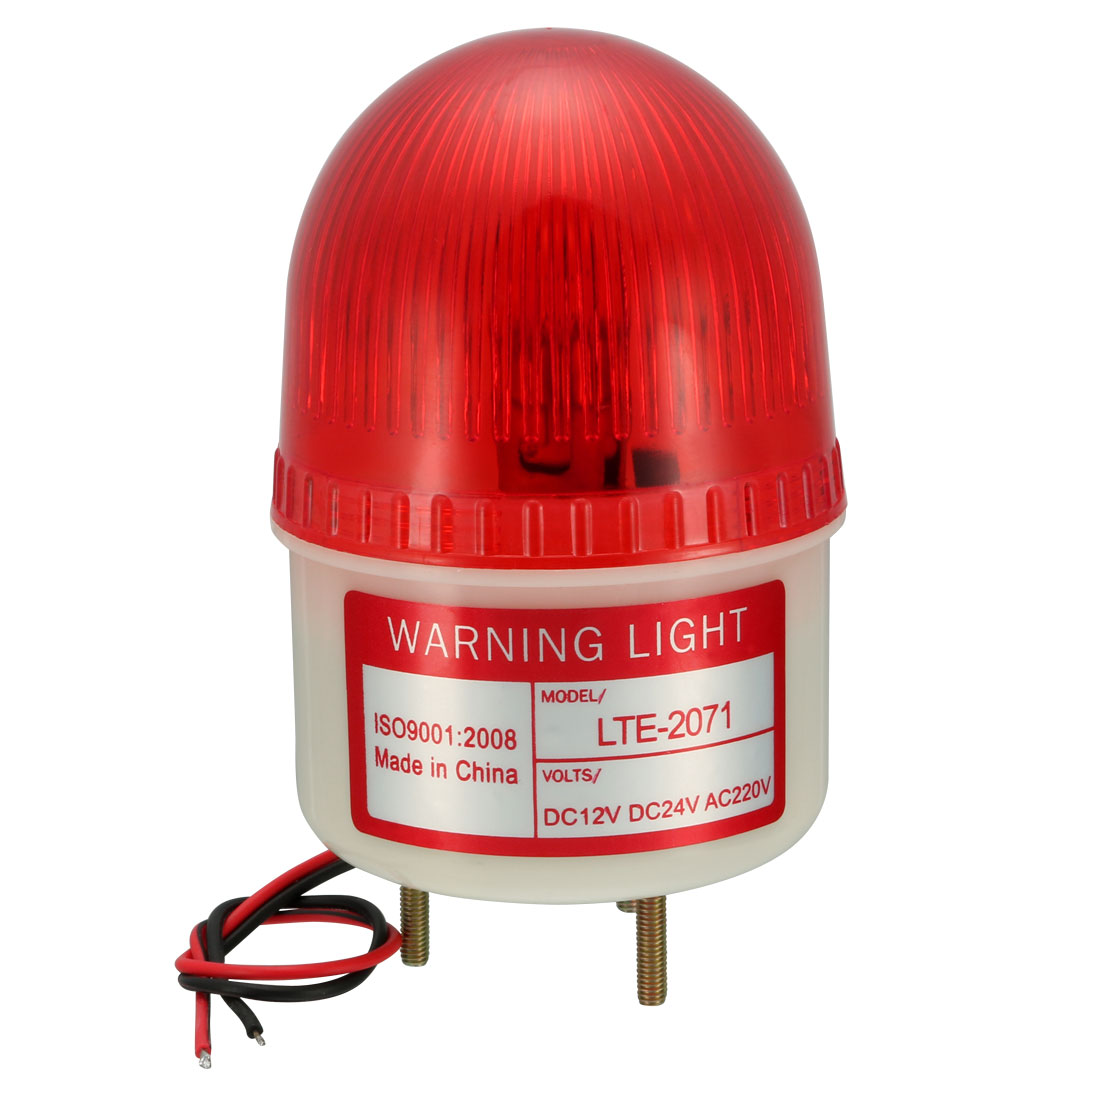 Emergency Warning Light Bulb Rotating Flash Signal Lamp DC 24V Red LTE-2071